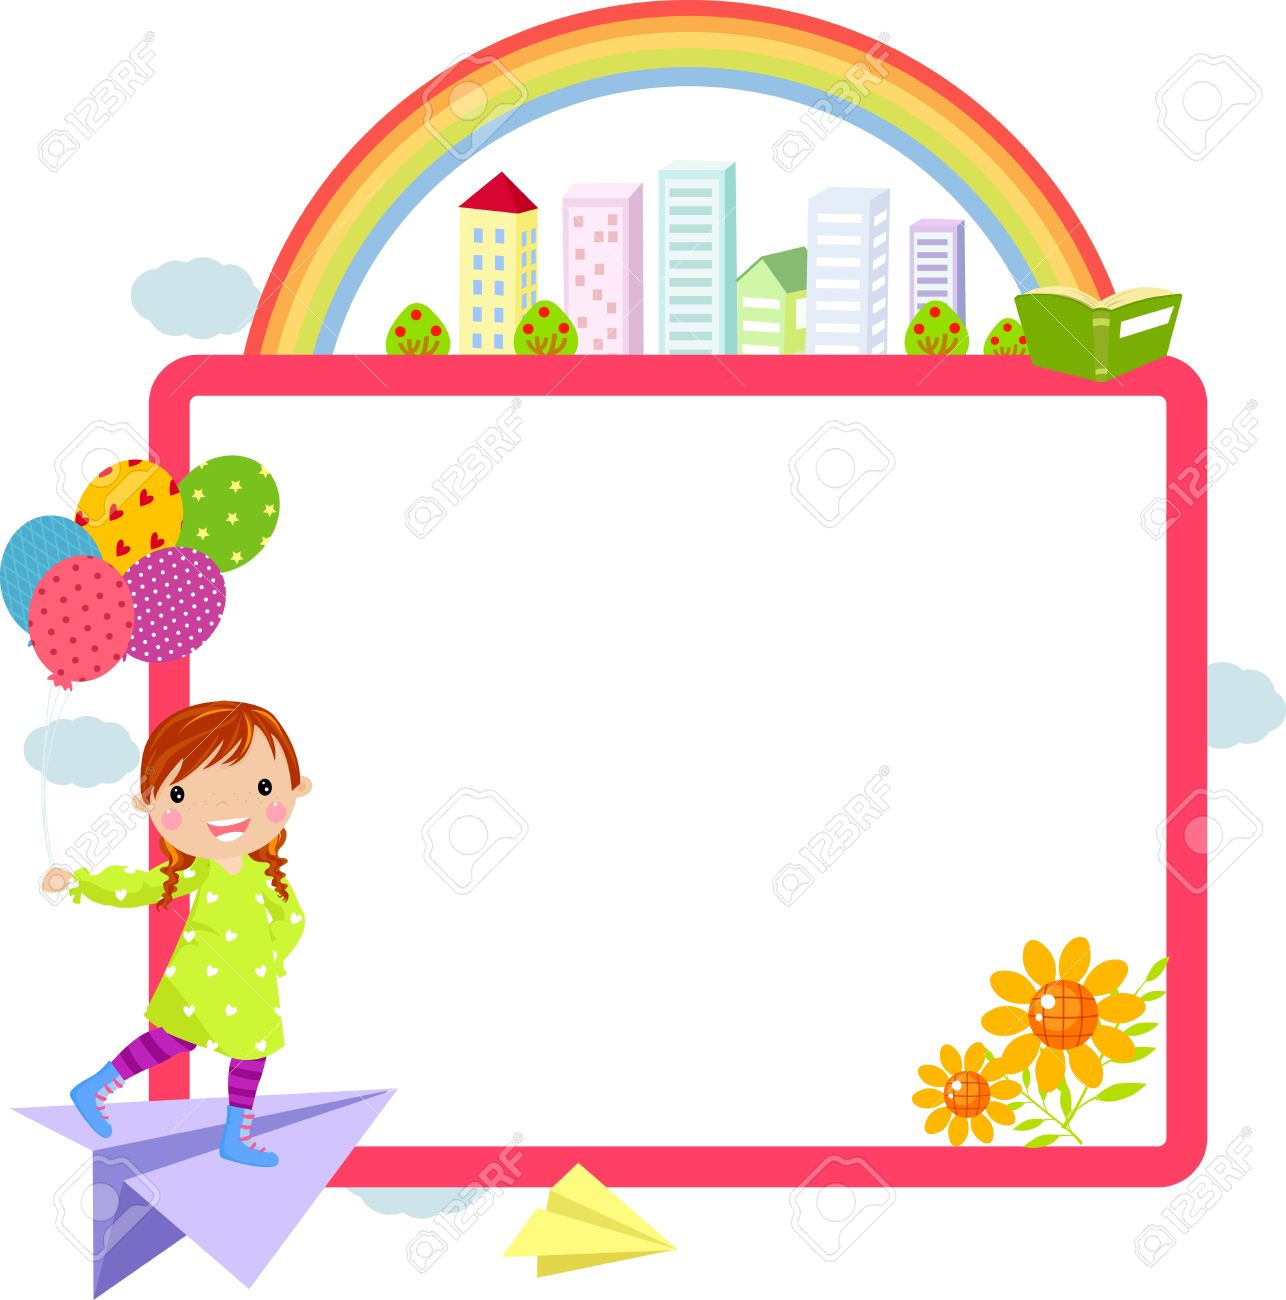 Cute Little Girl And Frame Royalty Free Cliparts, Vectors, And Stock ...